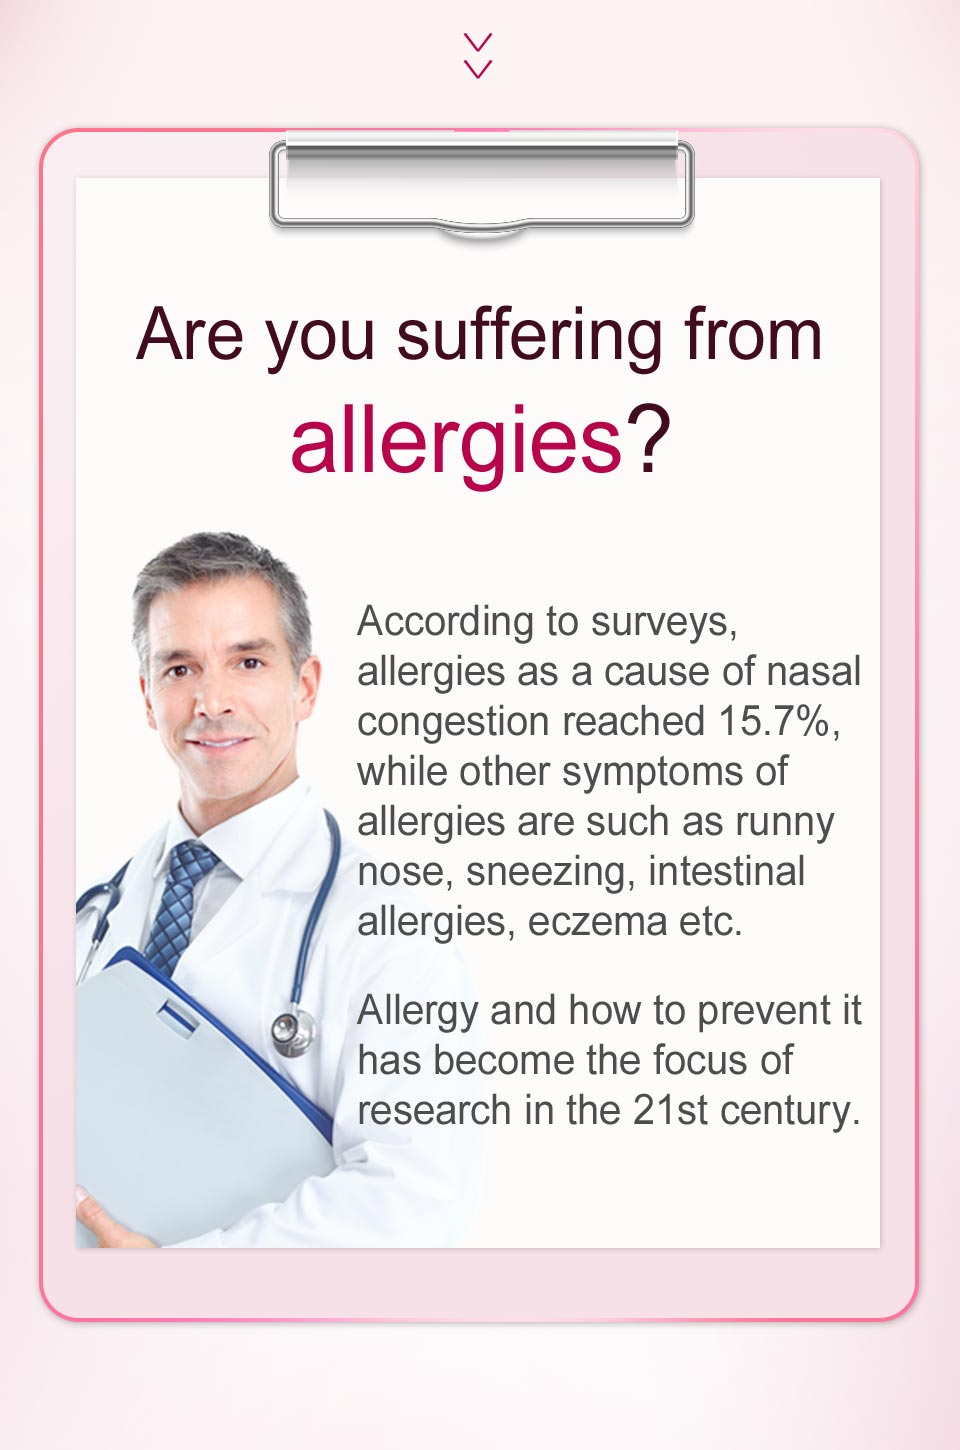 Allergies are exaggerated immune responses to environmental triggers known as allergens, symptoms like nasal congestion,itchy and watery eyes, sneezing.